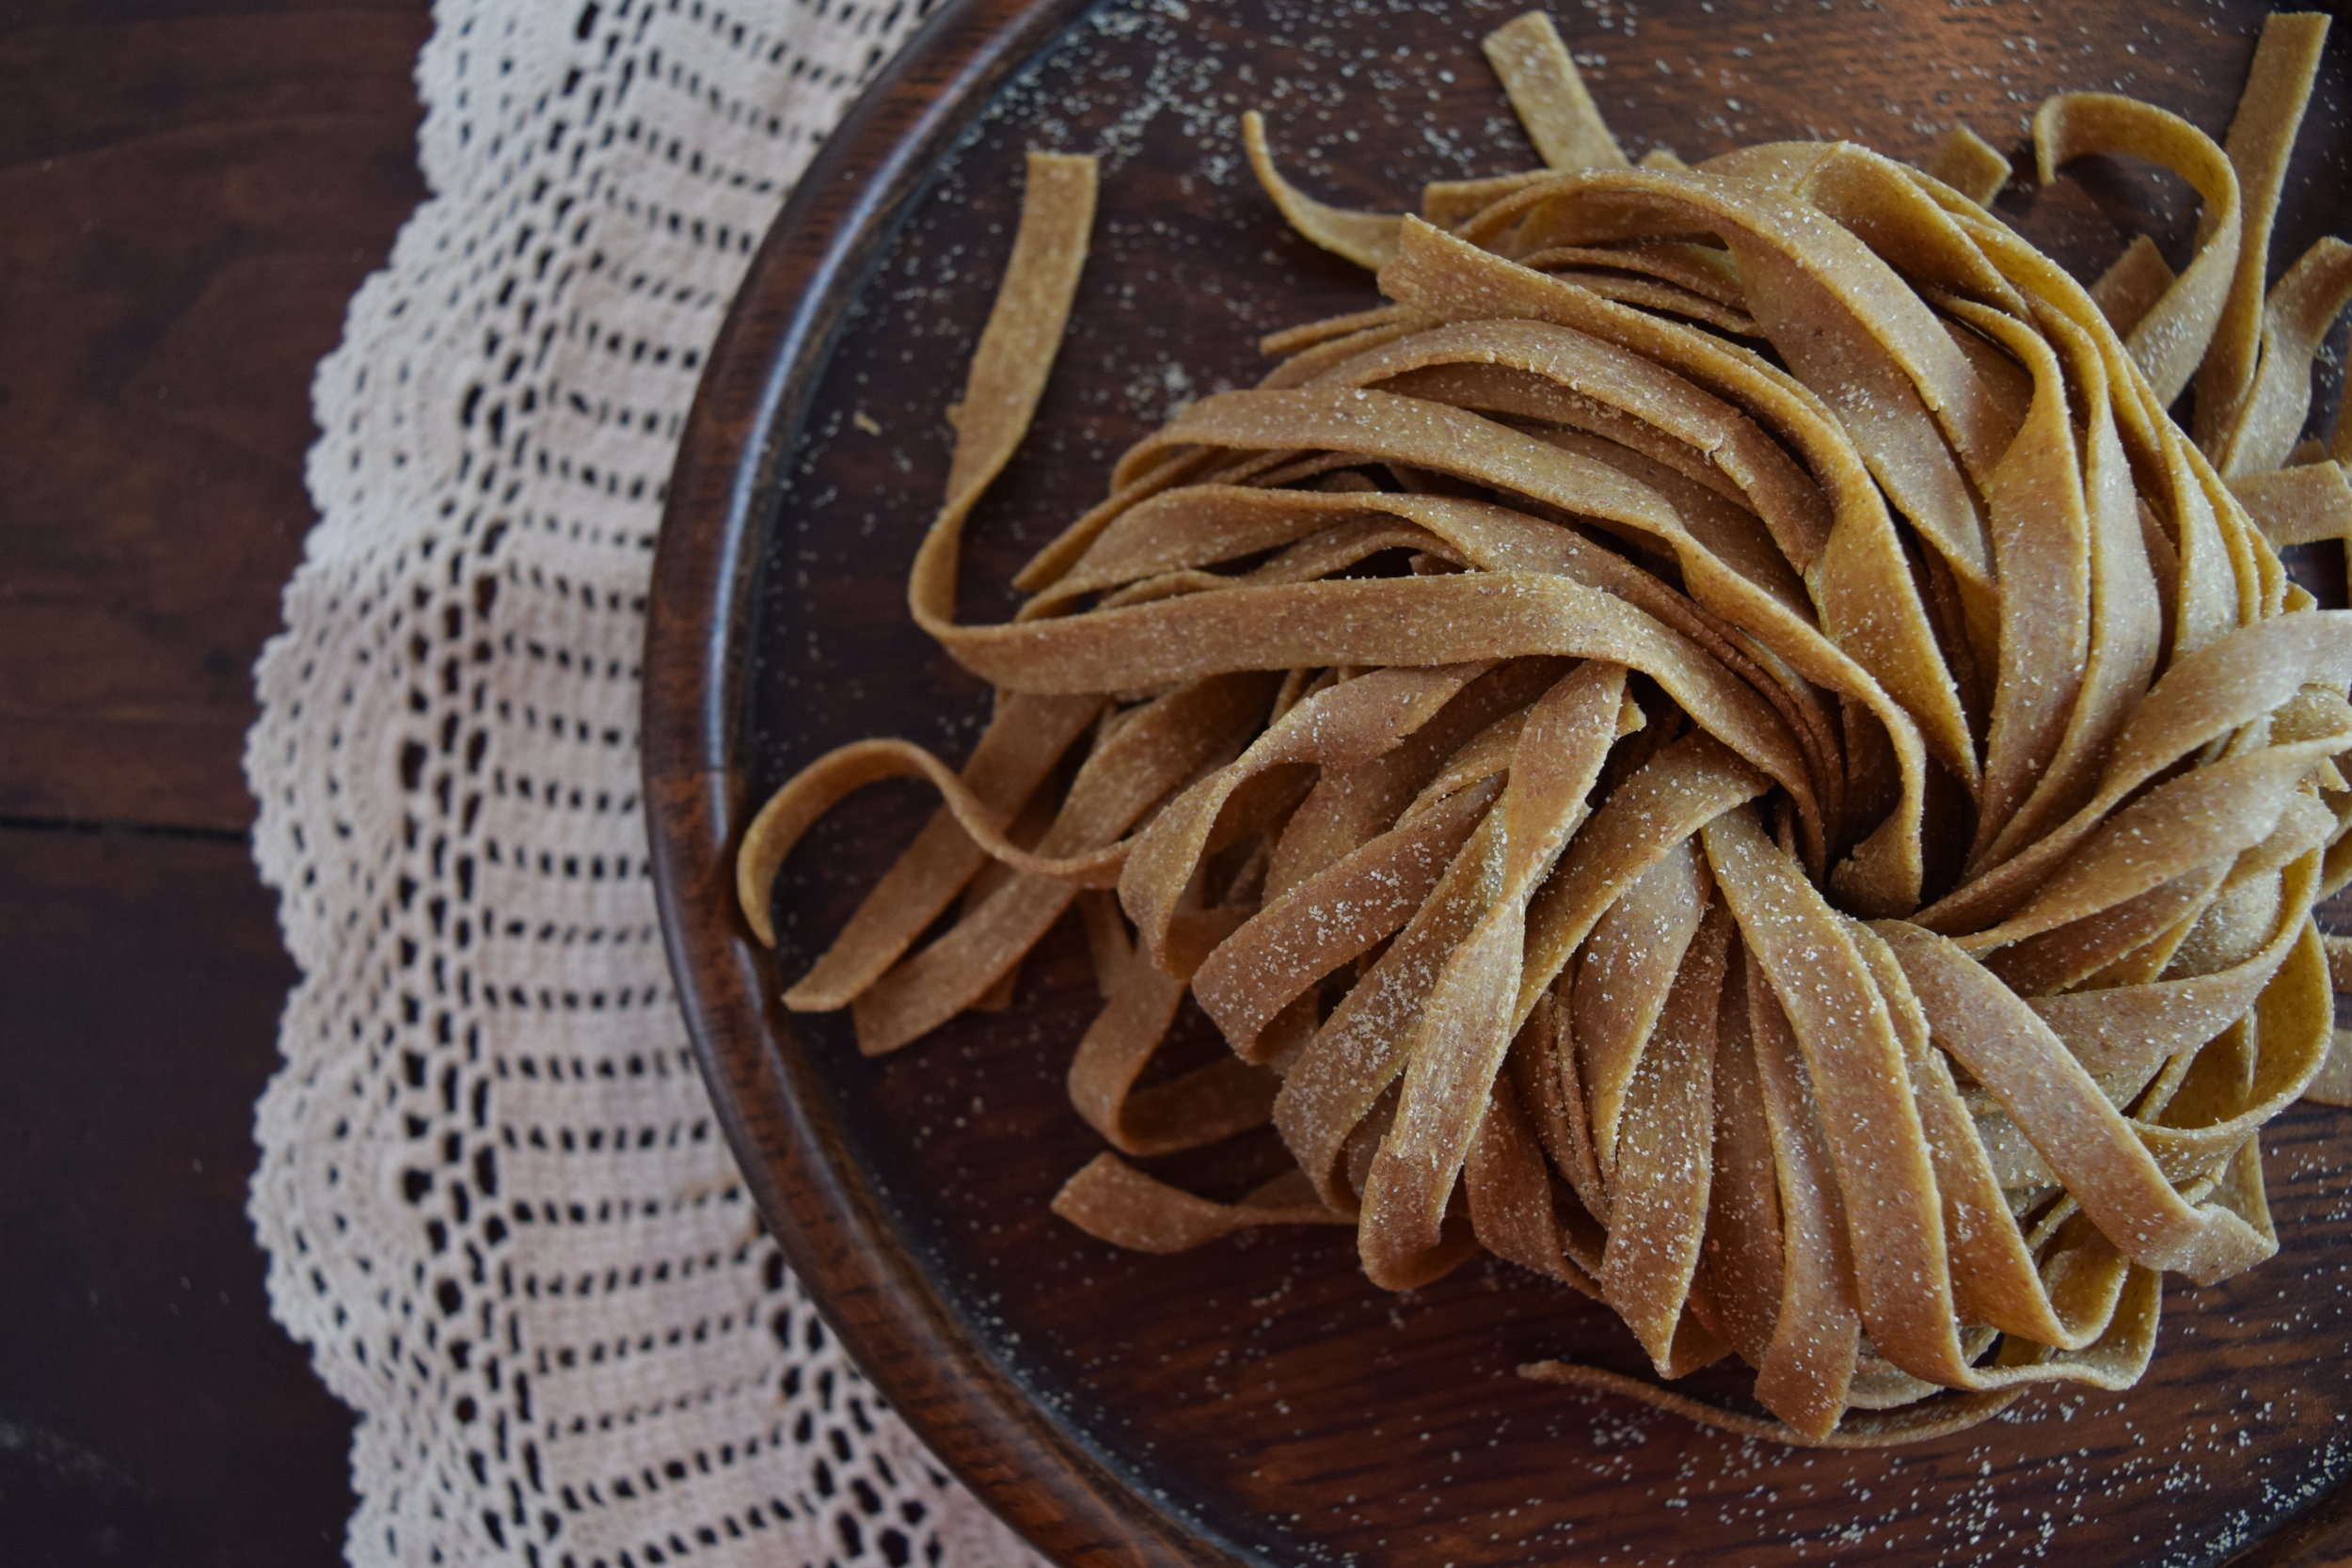 Kernza-based pasta created by Dumpling & Strand.